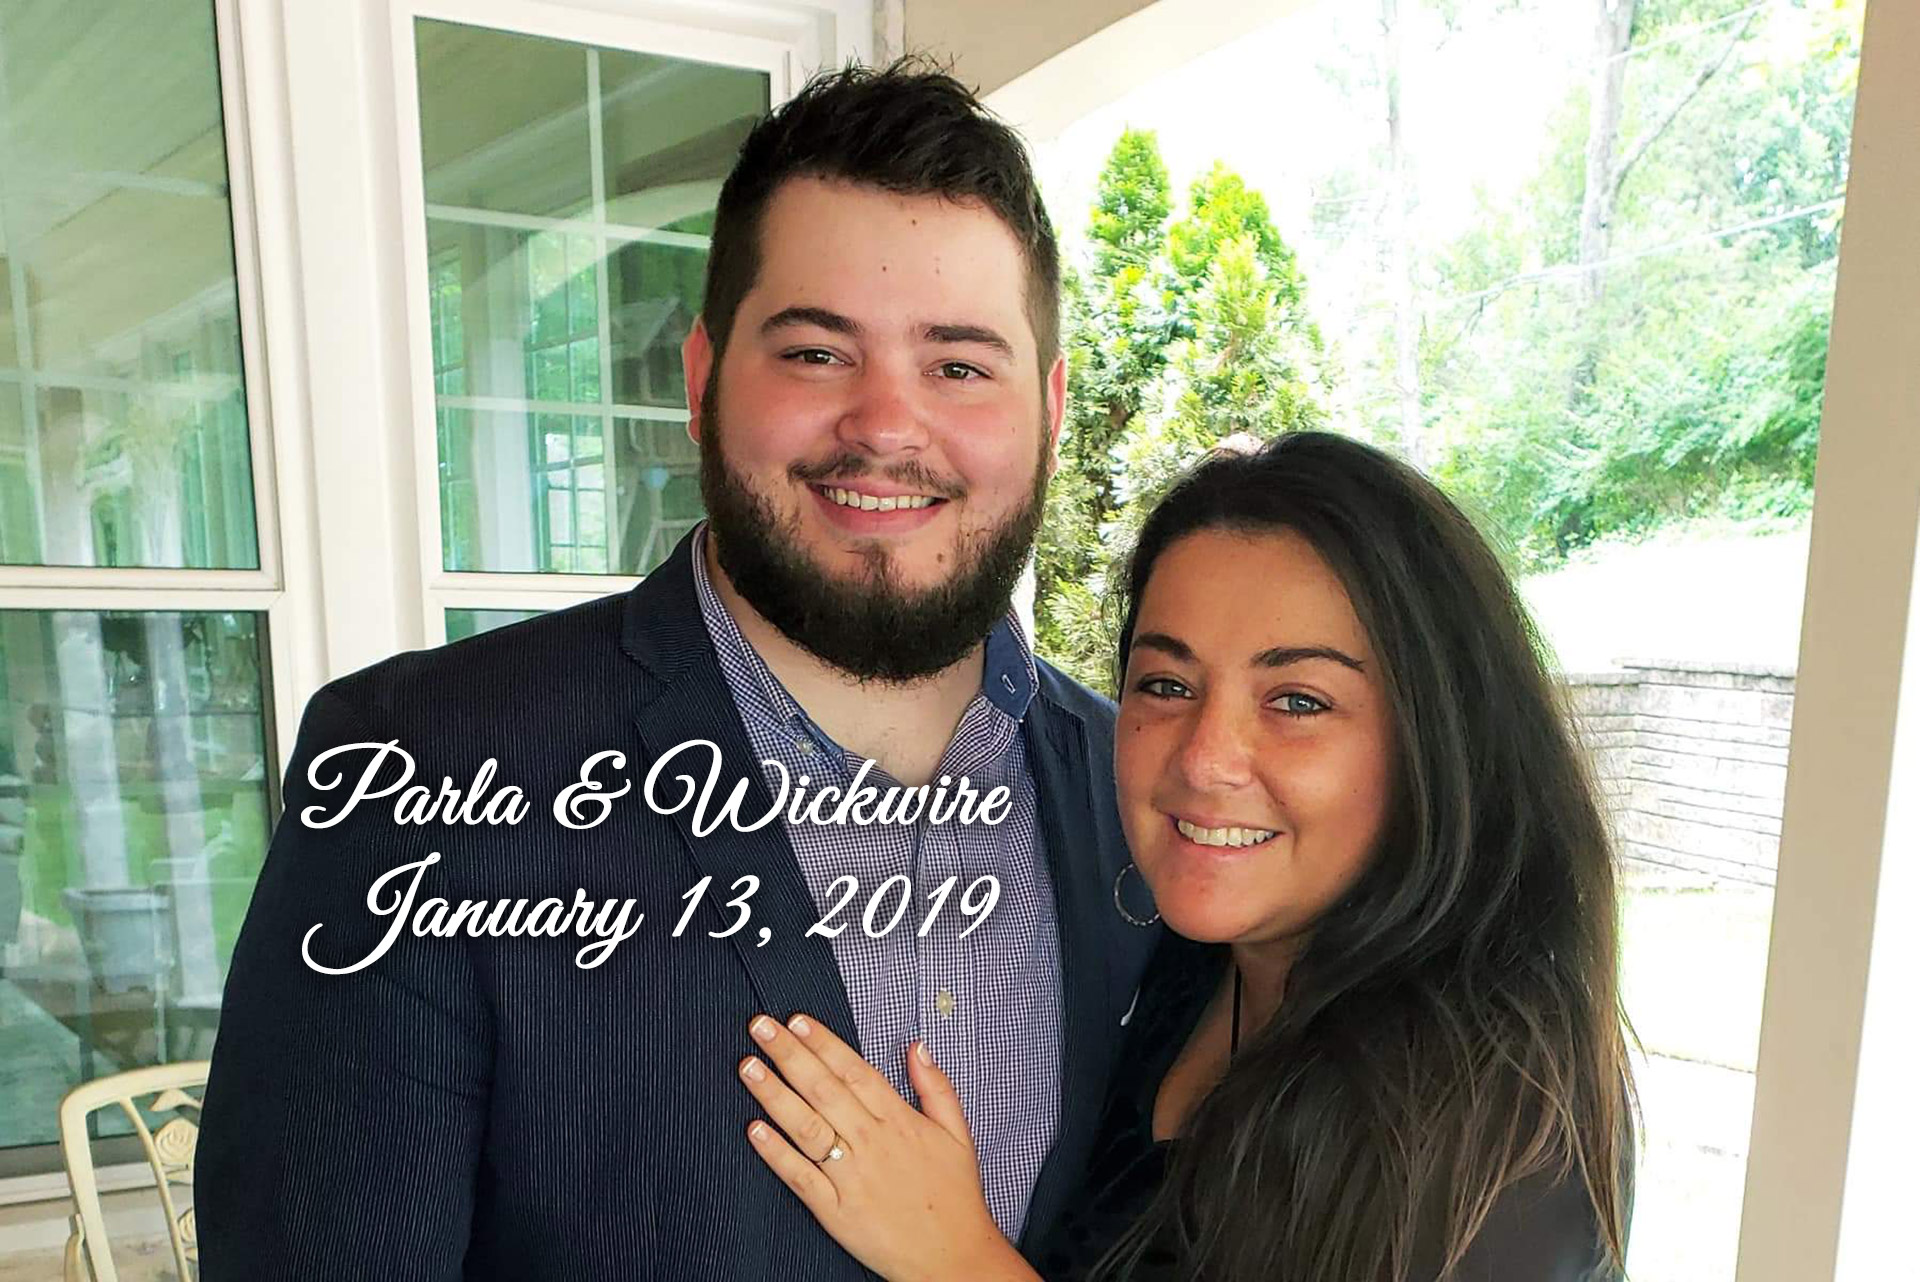 Parla-Wickwire Remnant Fellowship Wedding